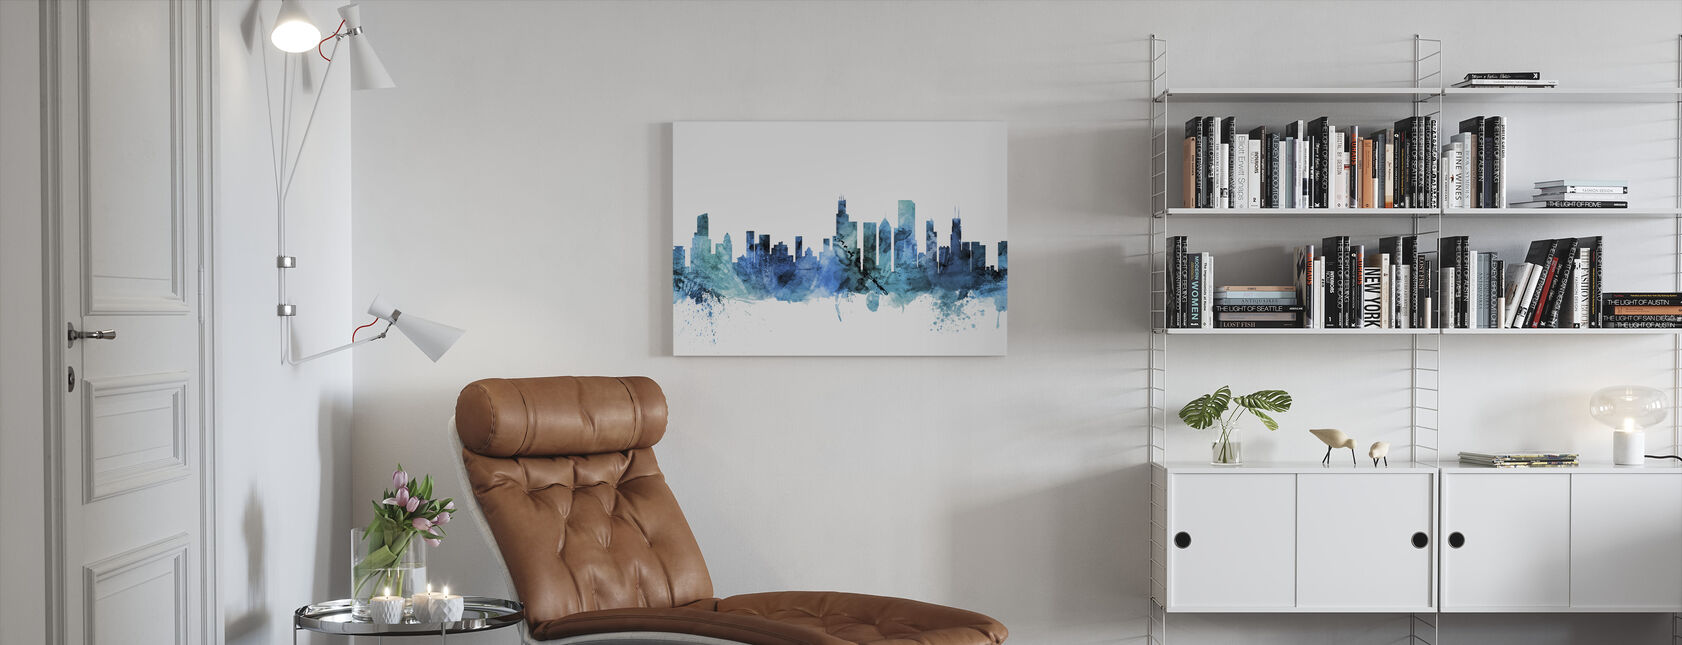 Chicago Illinois Skyline - Canvas print - Living Room